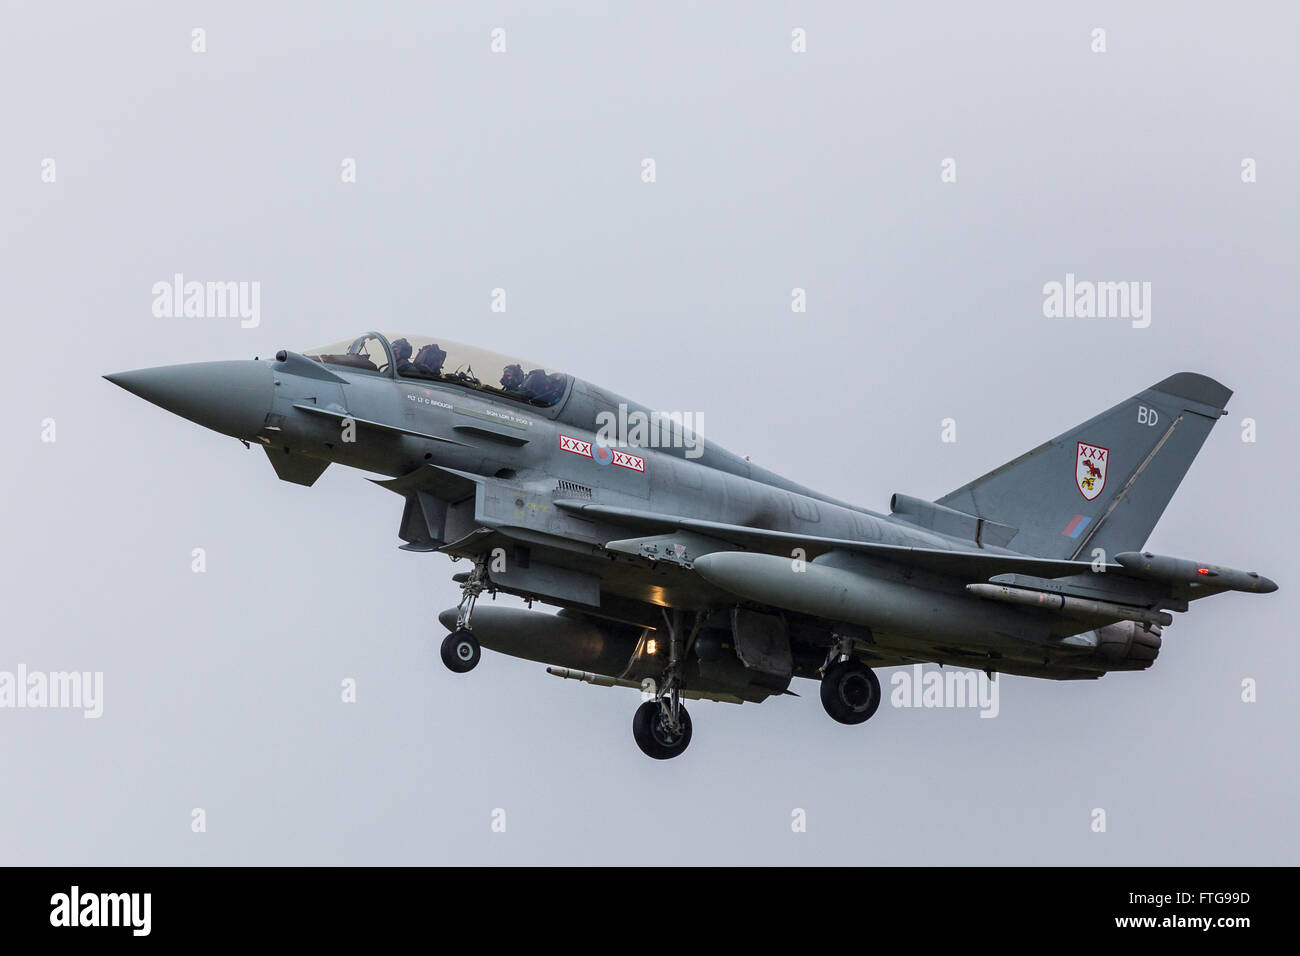 A twin-seat Typhoon flown by the RAF lands at Coningsby. Stock Photo